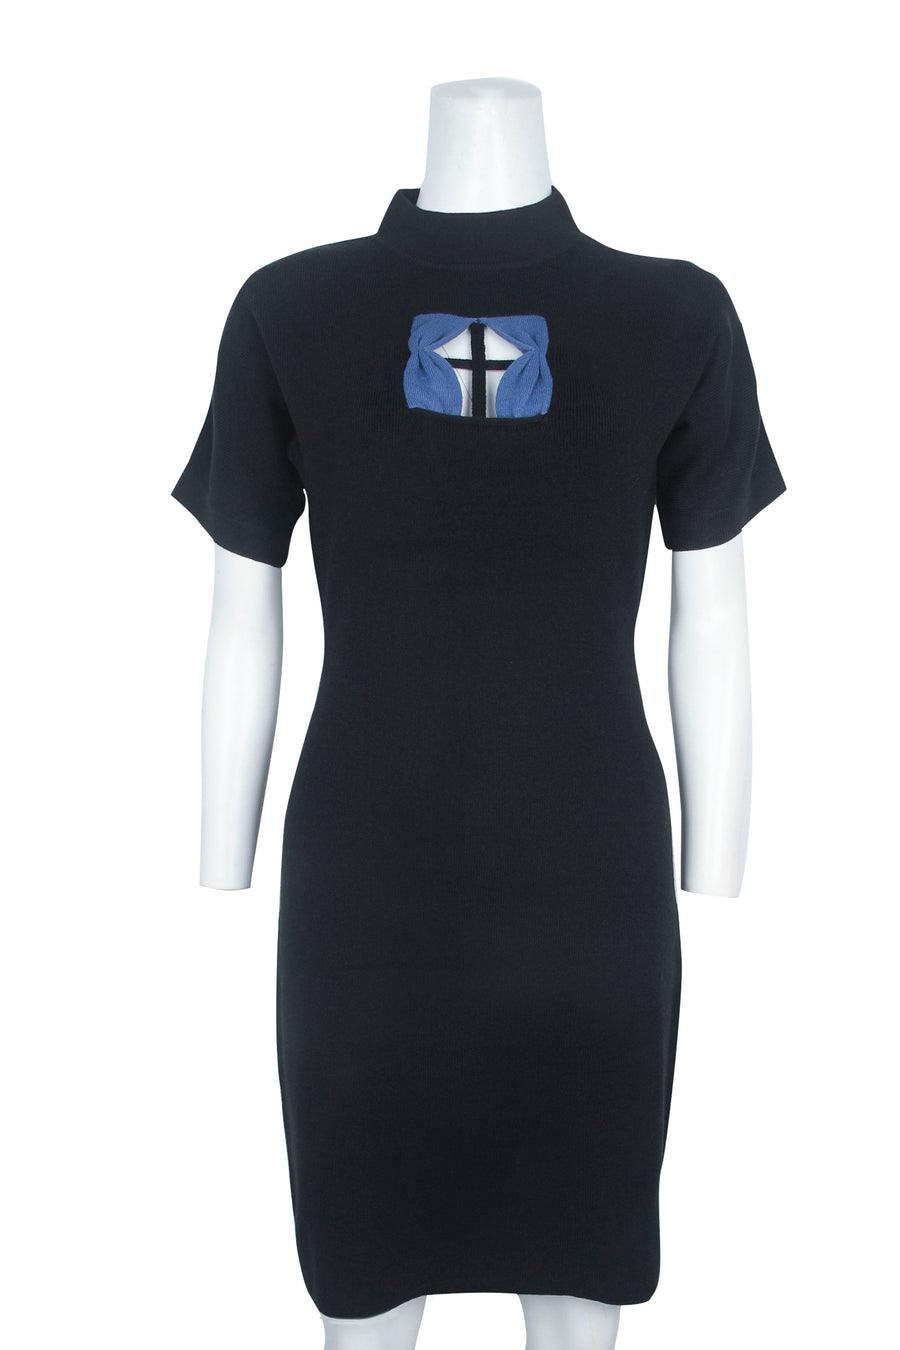 2 left- XS + 3XL Black Window Dress